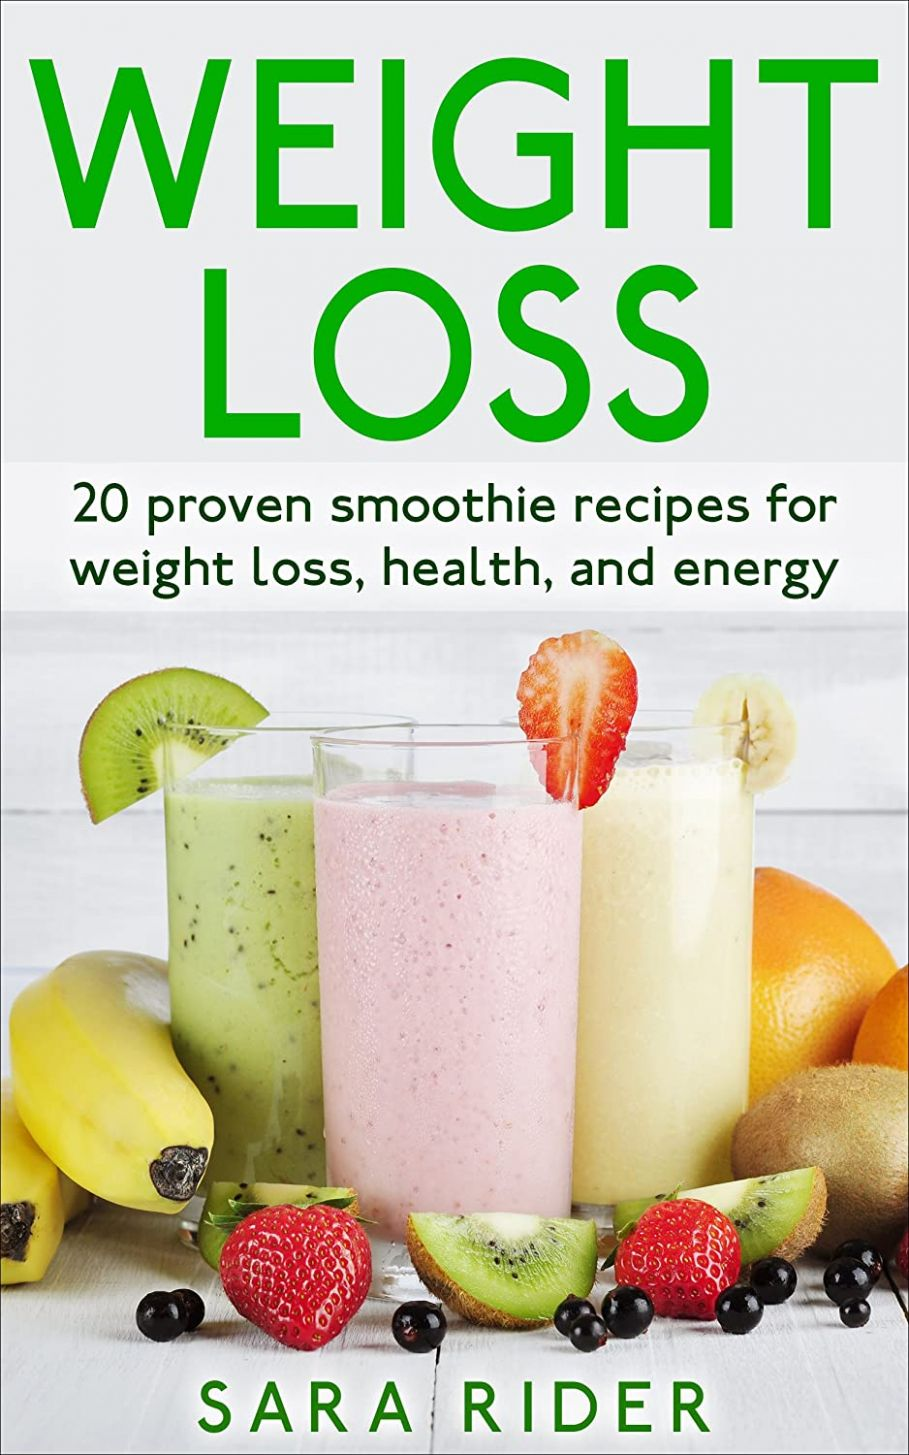 Weight Loss: 10 Proven Smoothie Recipes For Weight Loss, Health ..